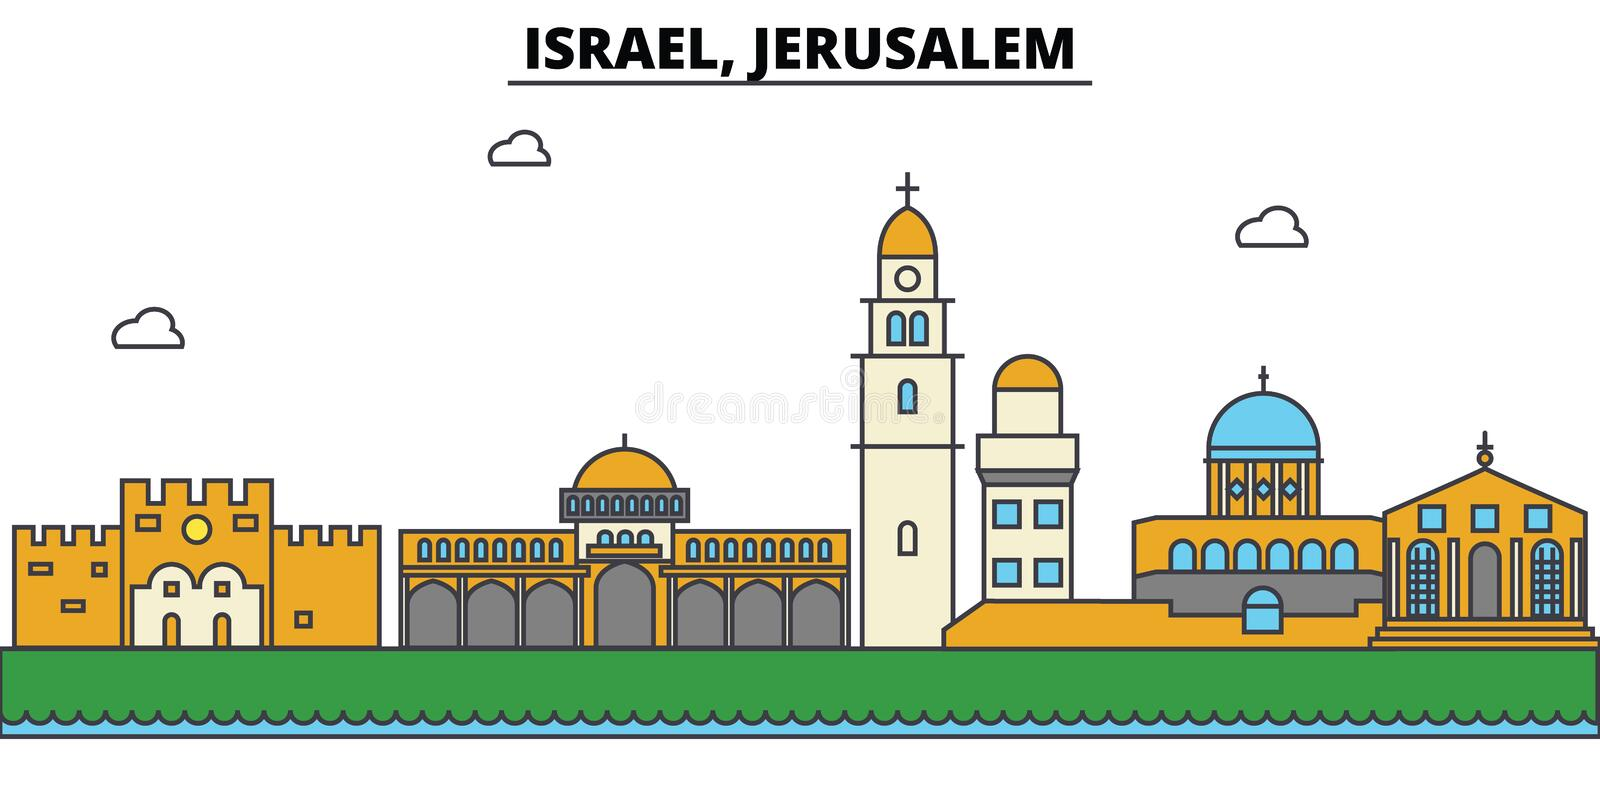 Israel, Jerusalem. City skyline architecture . Editable. Israel, Jerusalem. City skyline architecture, buildings, streets, silhouette, landscape, panorama stock illustration